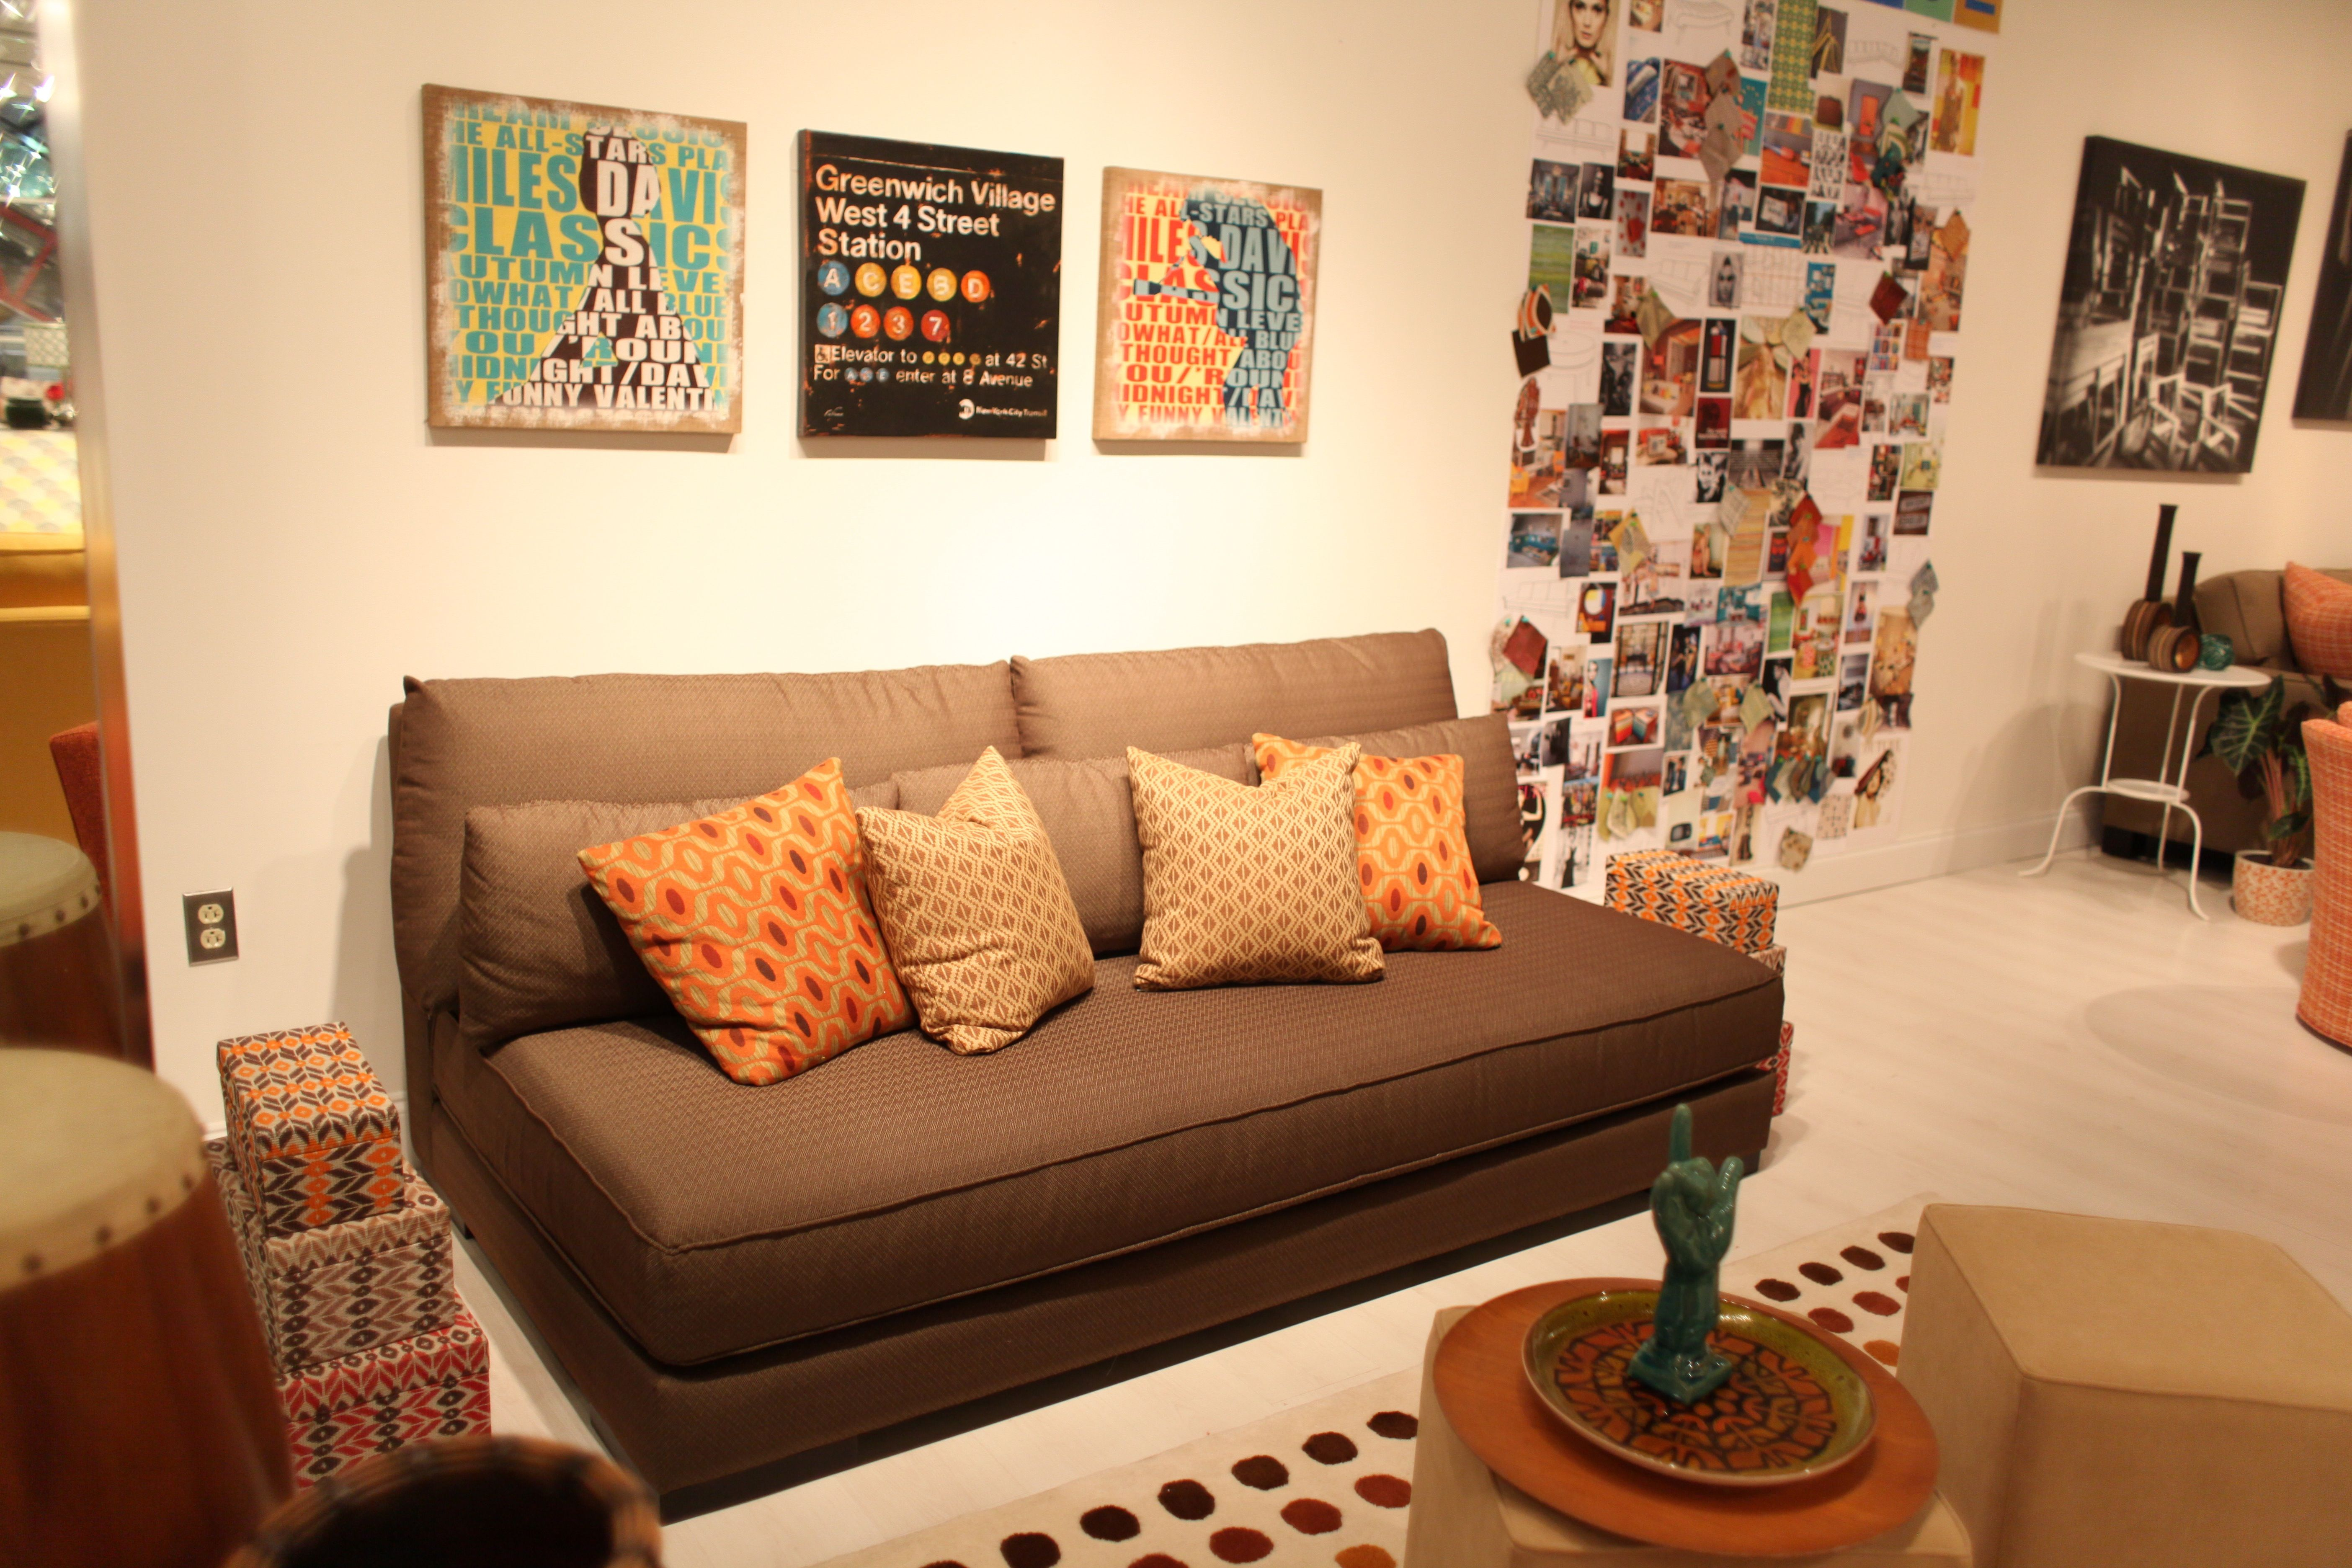 Younger Sofa James Angled Metal Legs Furniture Chill Oct 2012 Tour Of Showroom